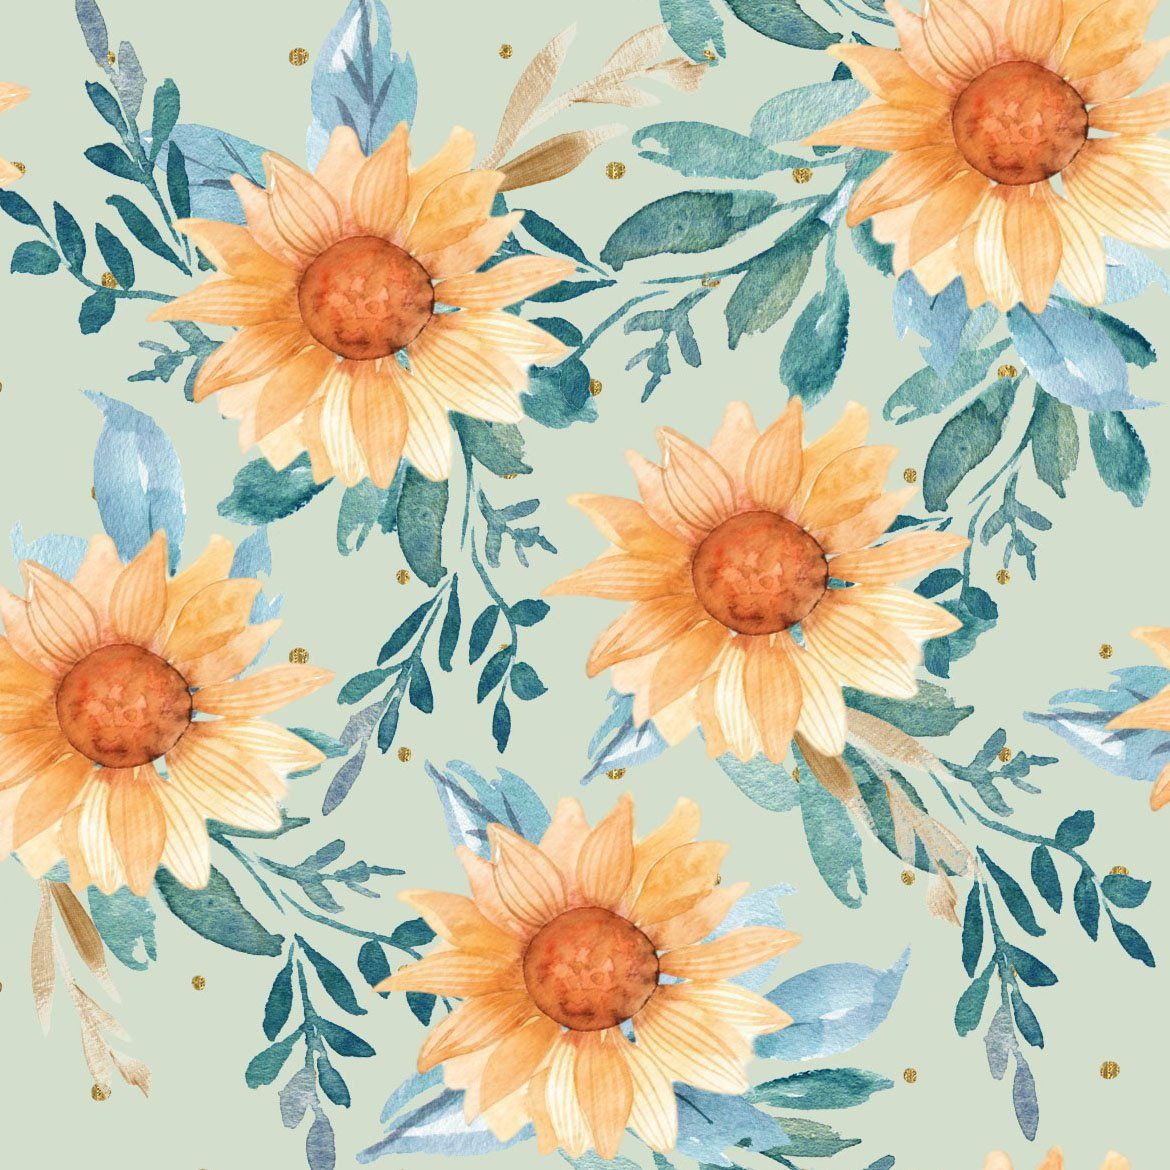 Harvest Sunflowers Fabric By The Yard Watercolor Summer Florals